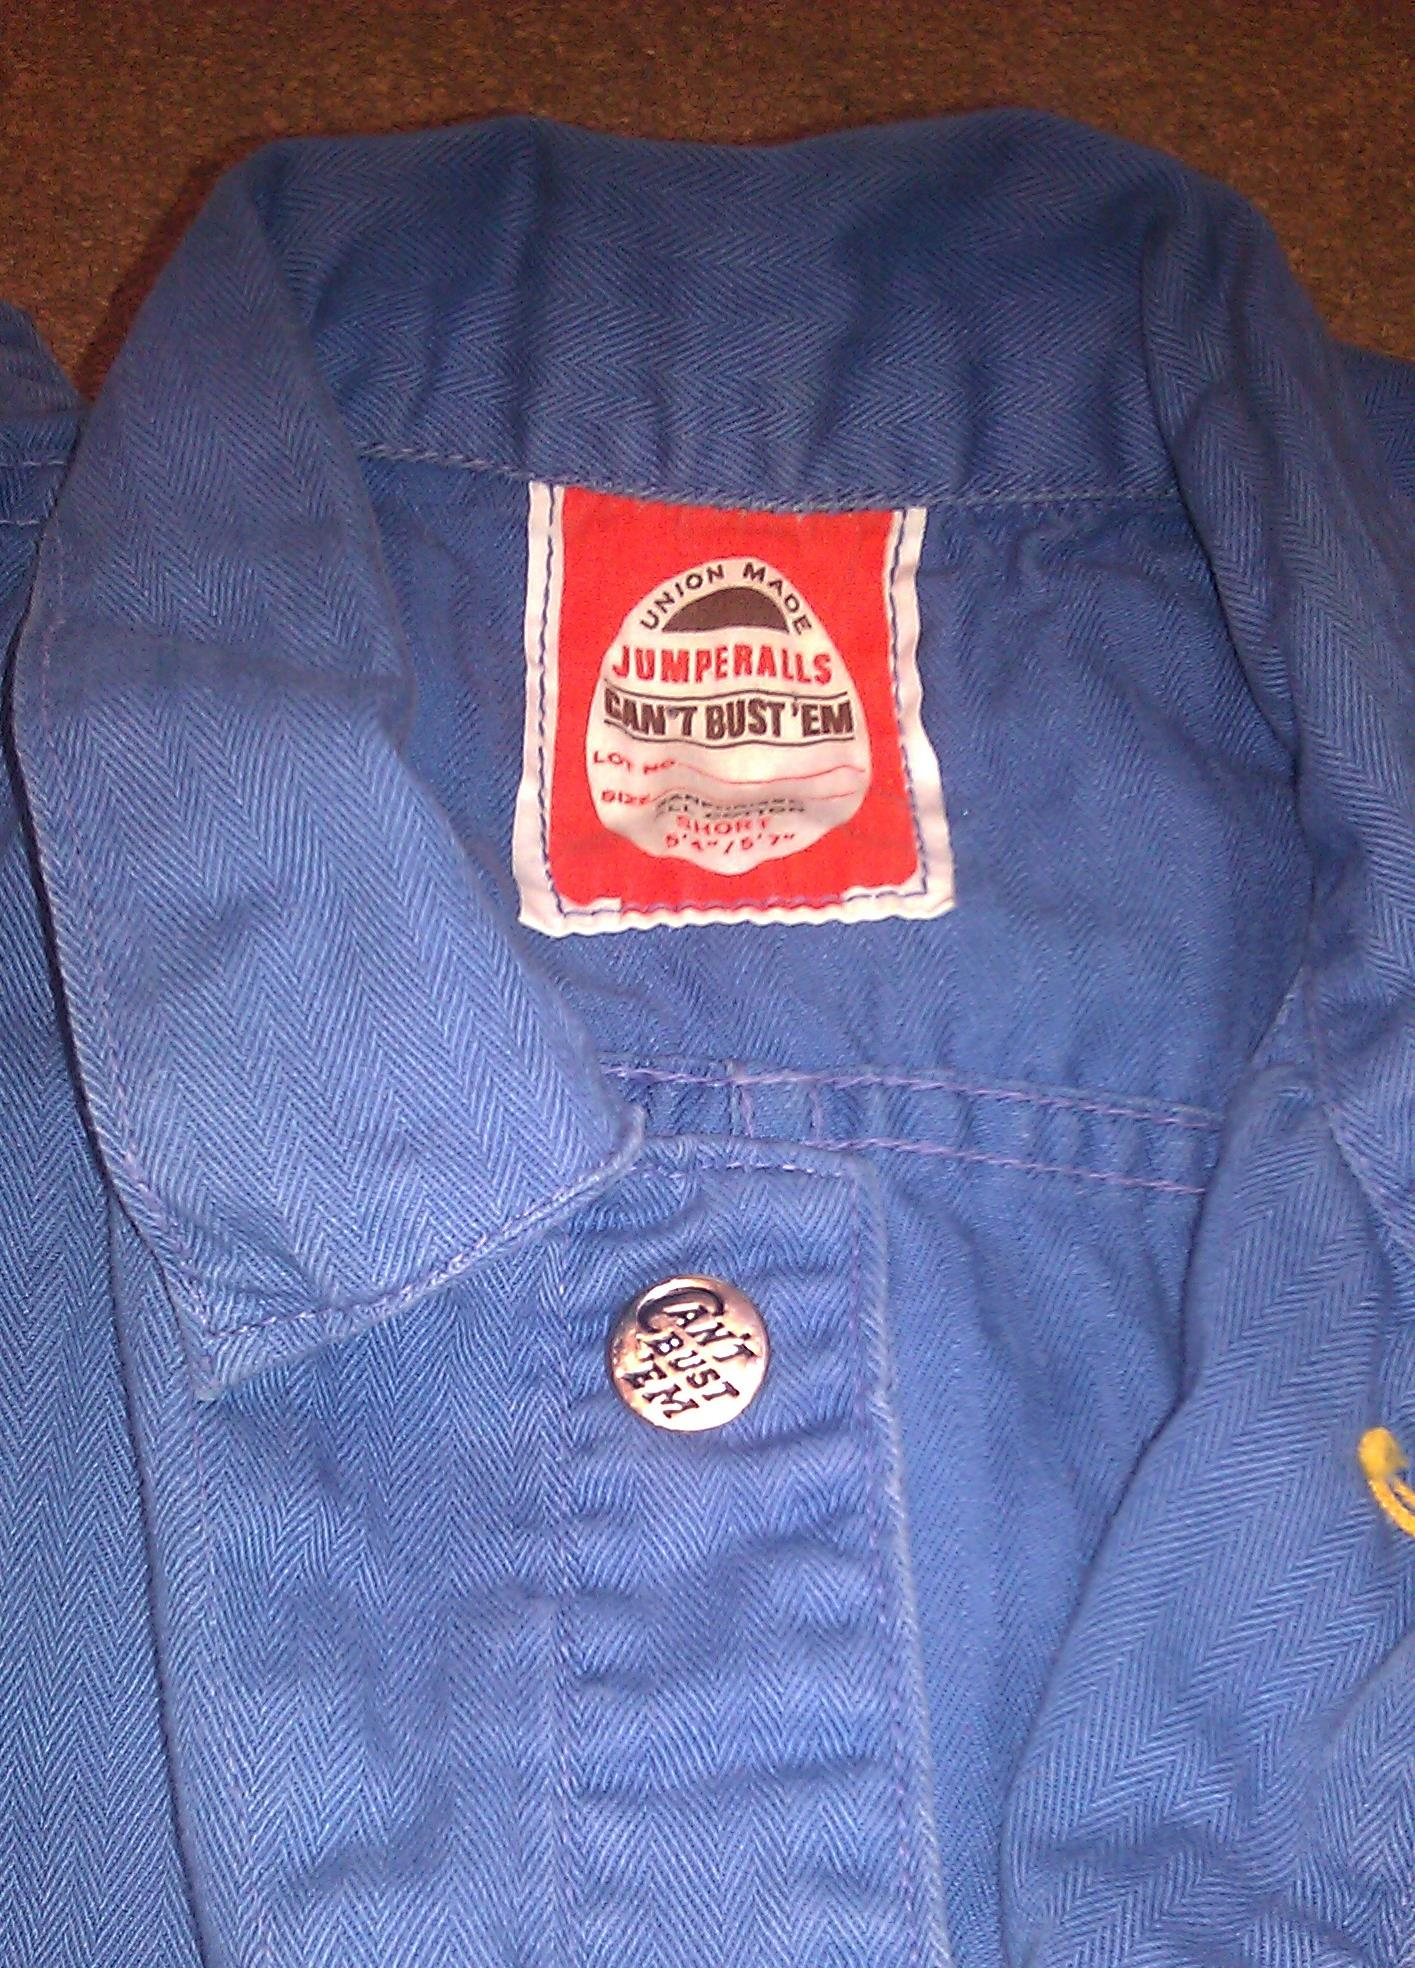 My beloved Can't Bust 'Em coveralls are also union made.